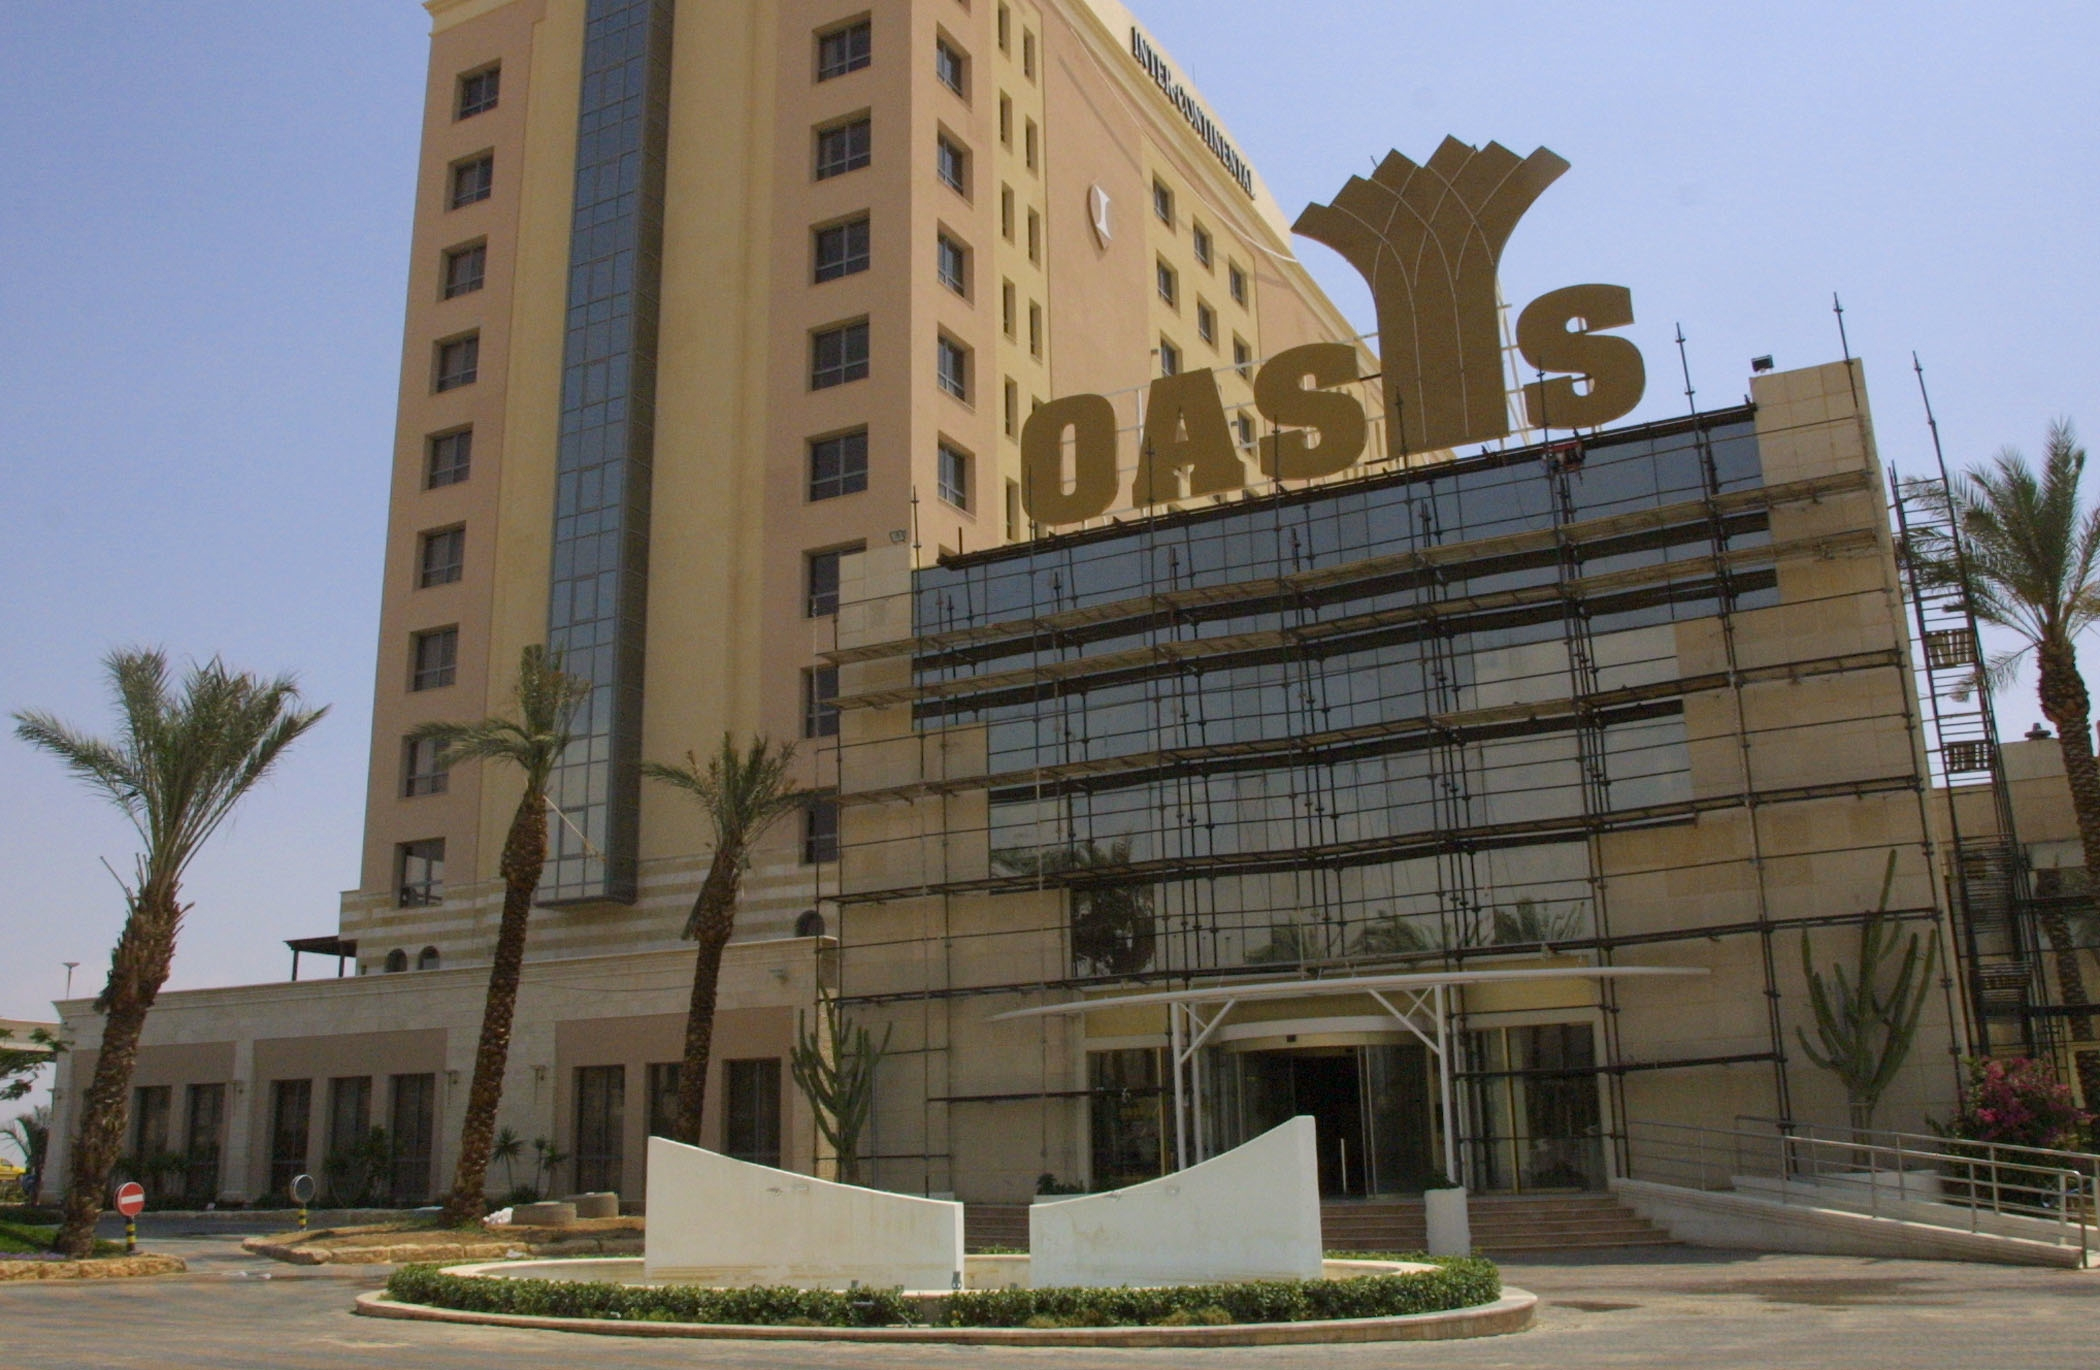 Once a symbol of the promise of Israeli-Palestinian peace, the Oasis Casino in Jericho has been shuttered for 13 years. (David Silverman/Newsmakers)